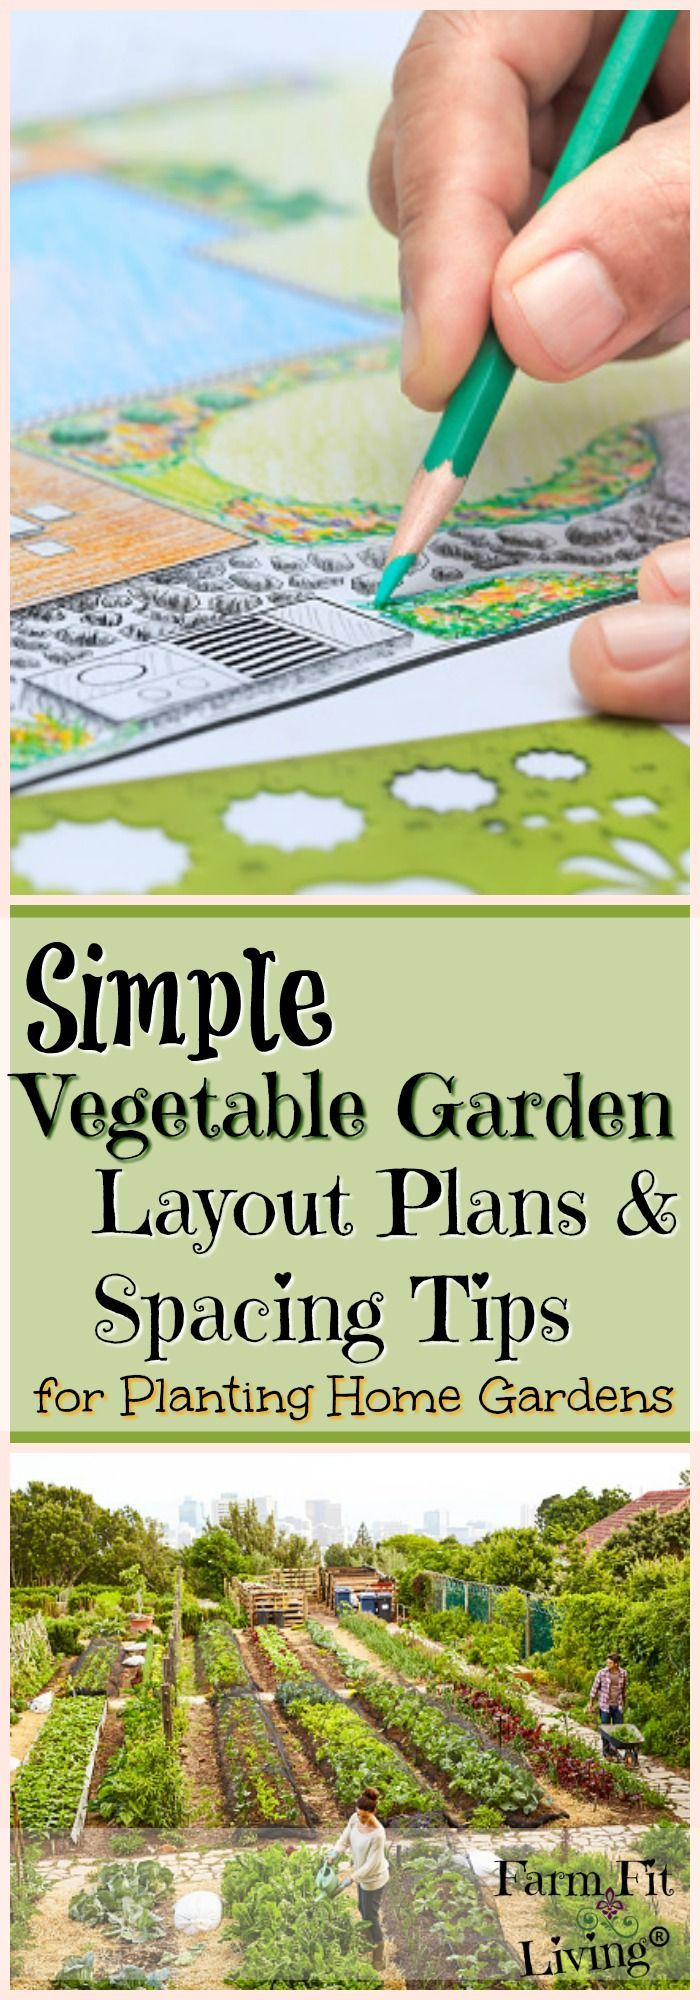 Are You Looking For More Simple Vegetable Garden Layout Plans And Spacing Tips To Maximize Efficiency